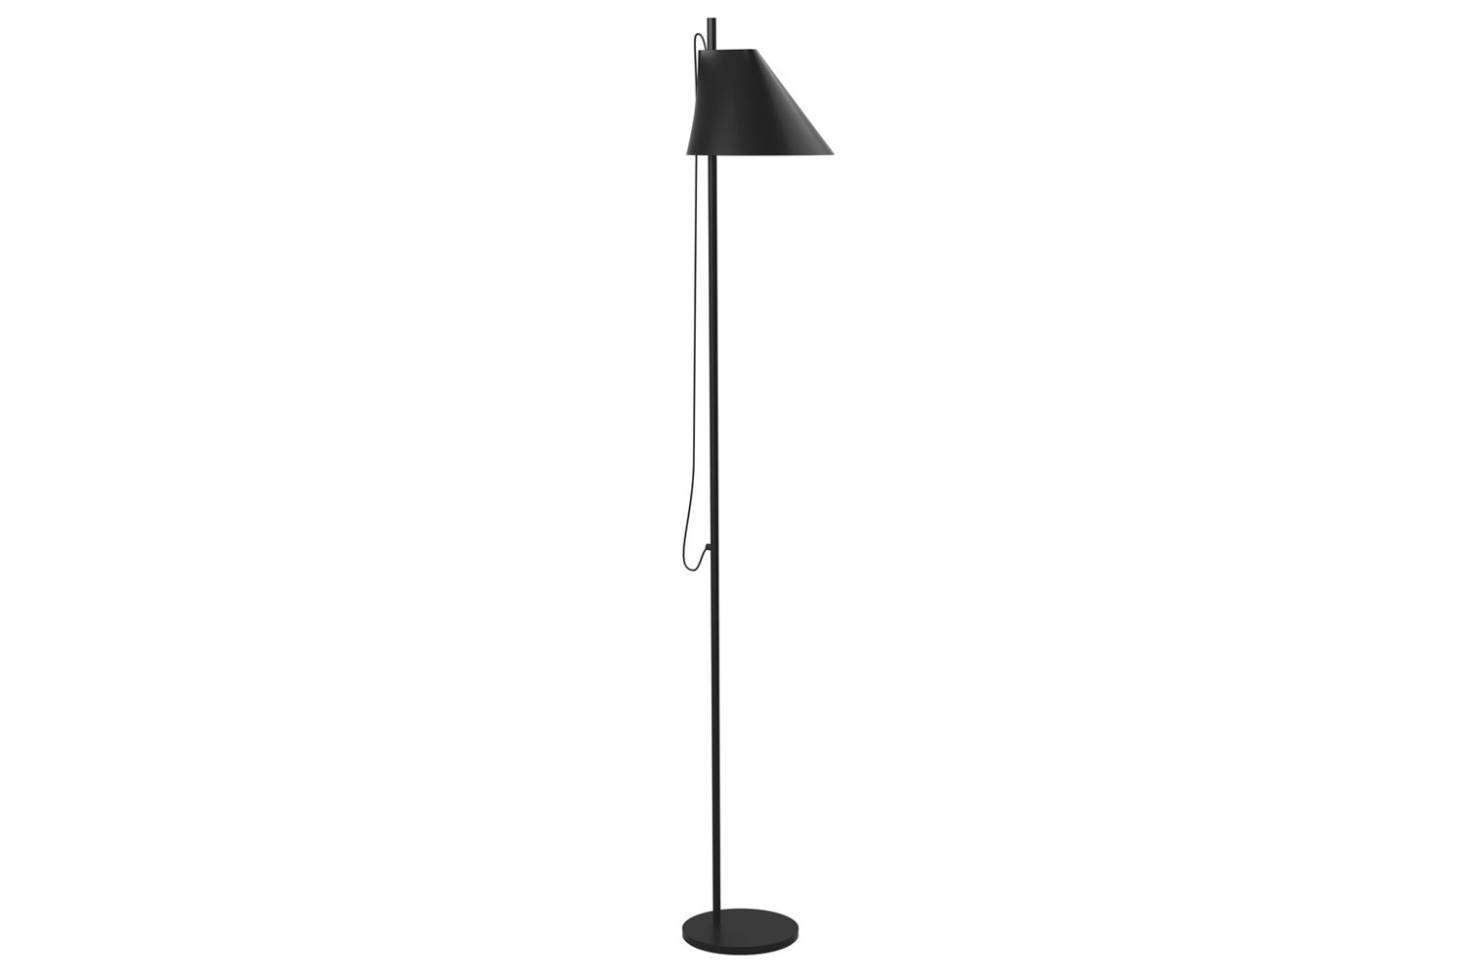 The Yuh Floor Lamp designed byLouis Poulsen has a shade that pivots and rotates and an LED light that dims down to 15-percent. Designed in Denmark from die cast aluminum, the lamp is $764 at Horne.